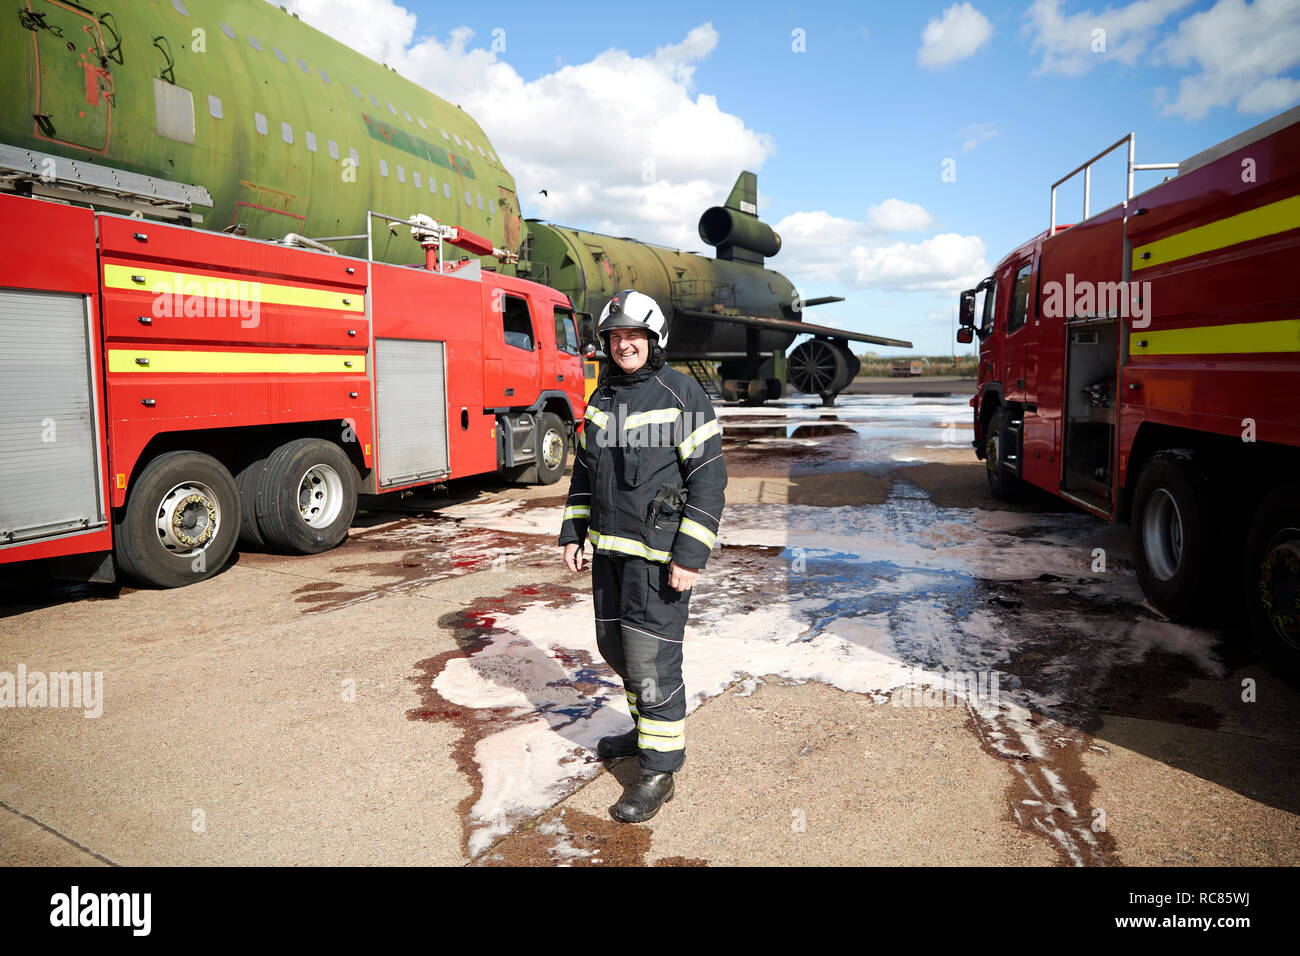 Fire training, fireman by fire engines at training facility, portrait - Stock Image